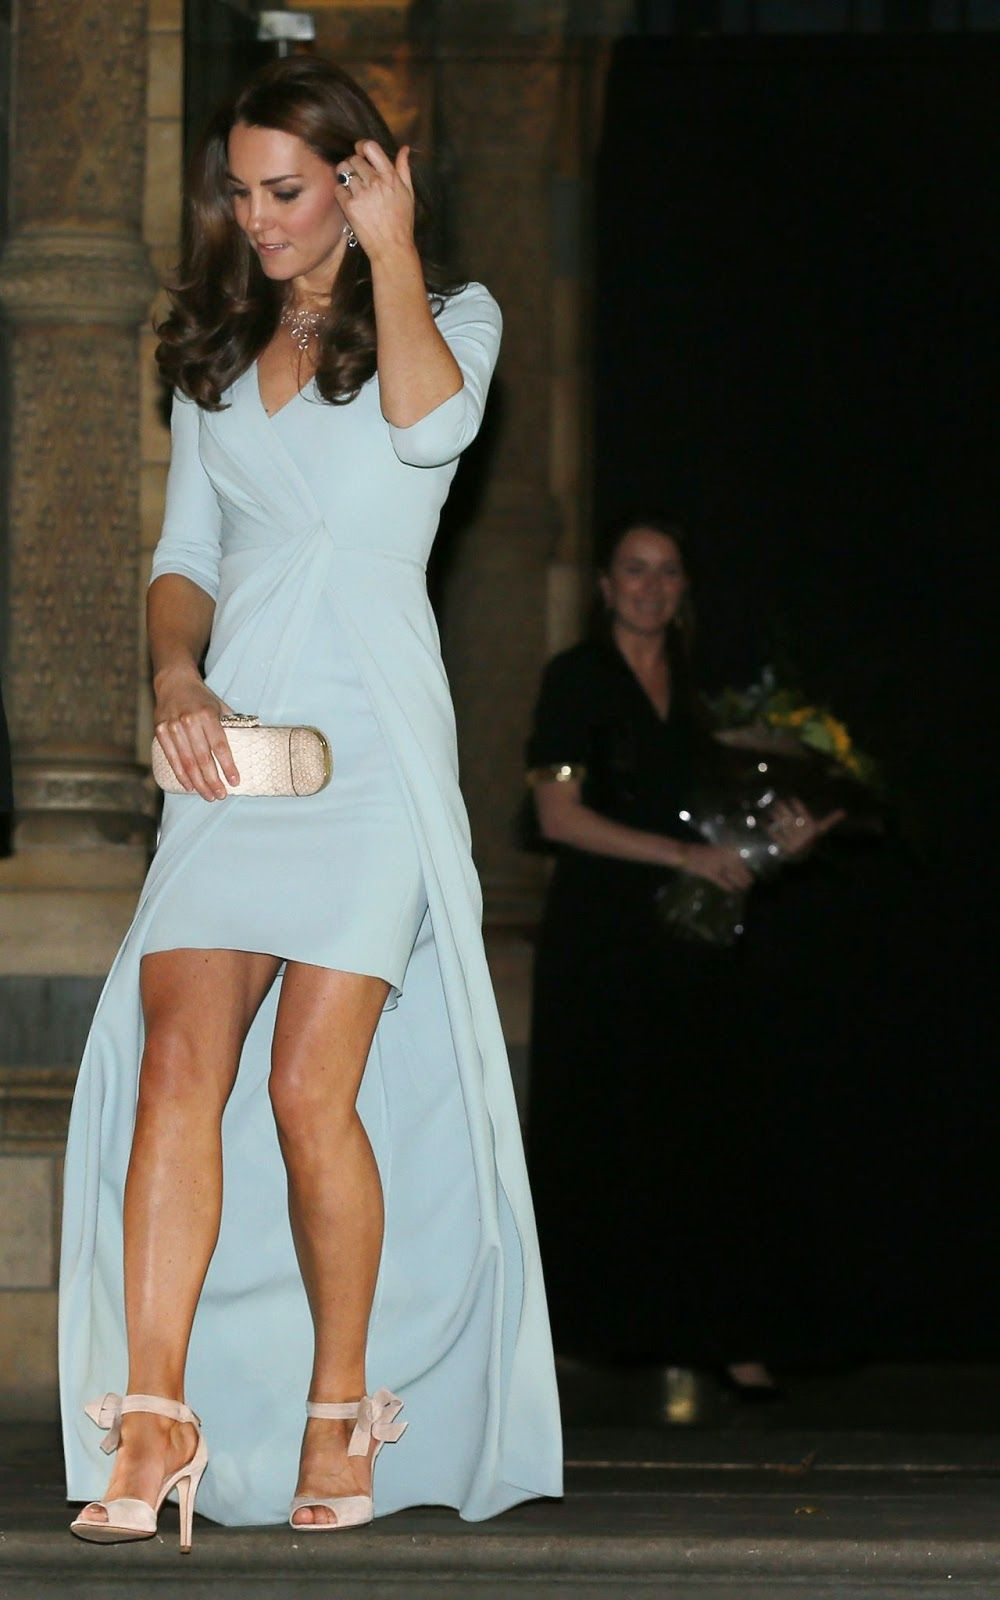 She S Gorgeous And Her Legs Are Sexy Kate Middleton